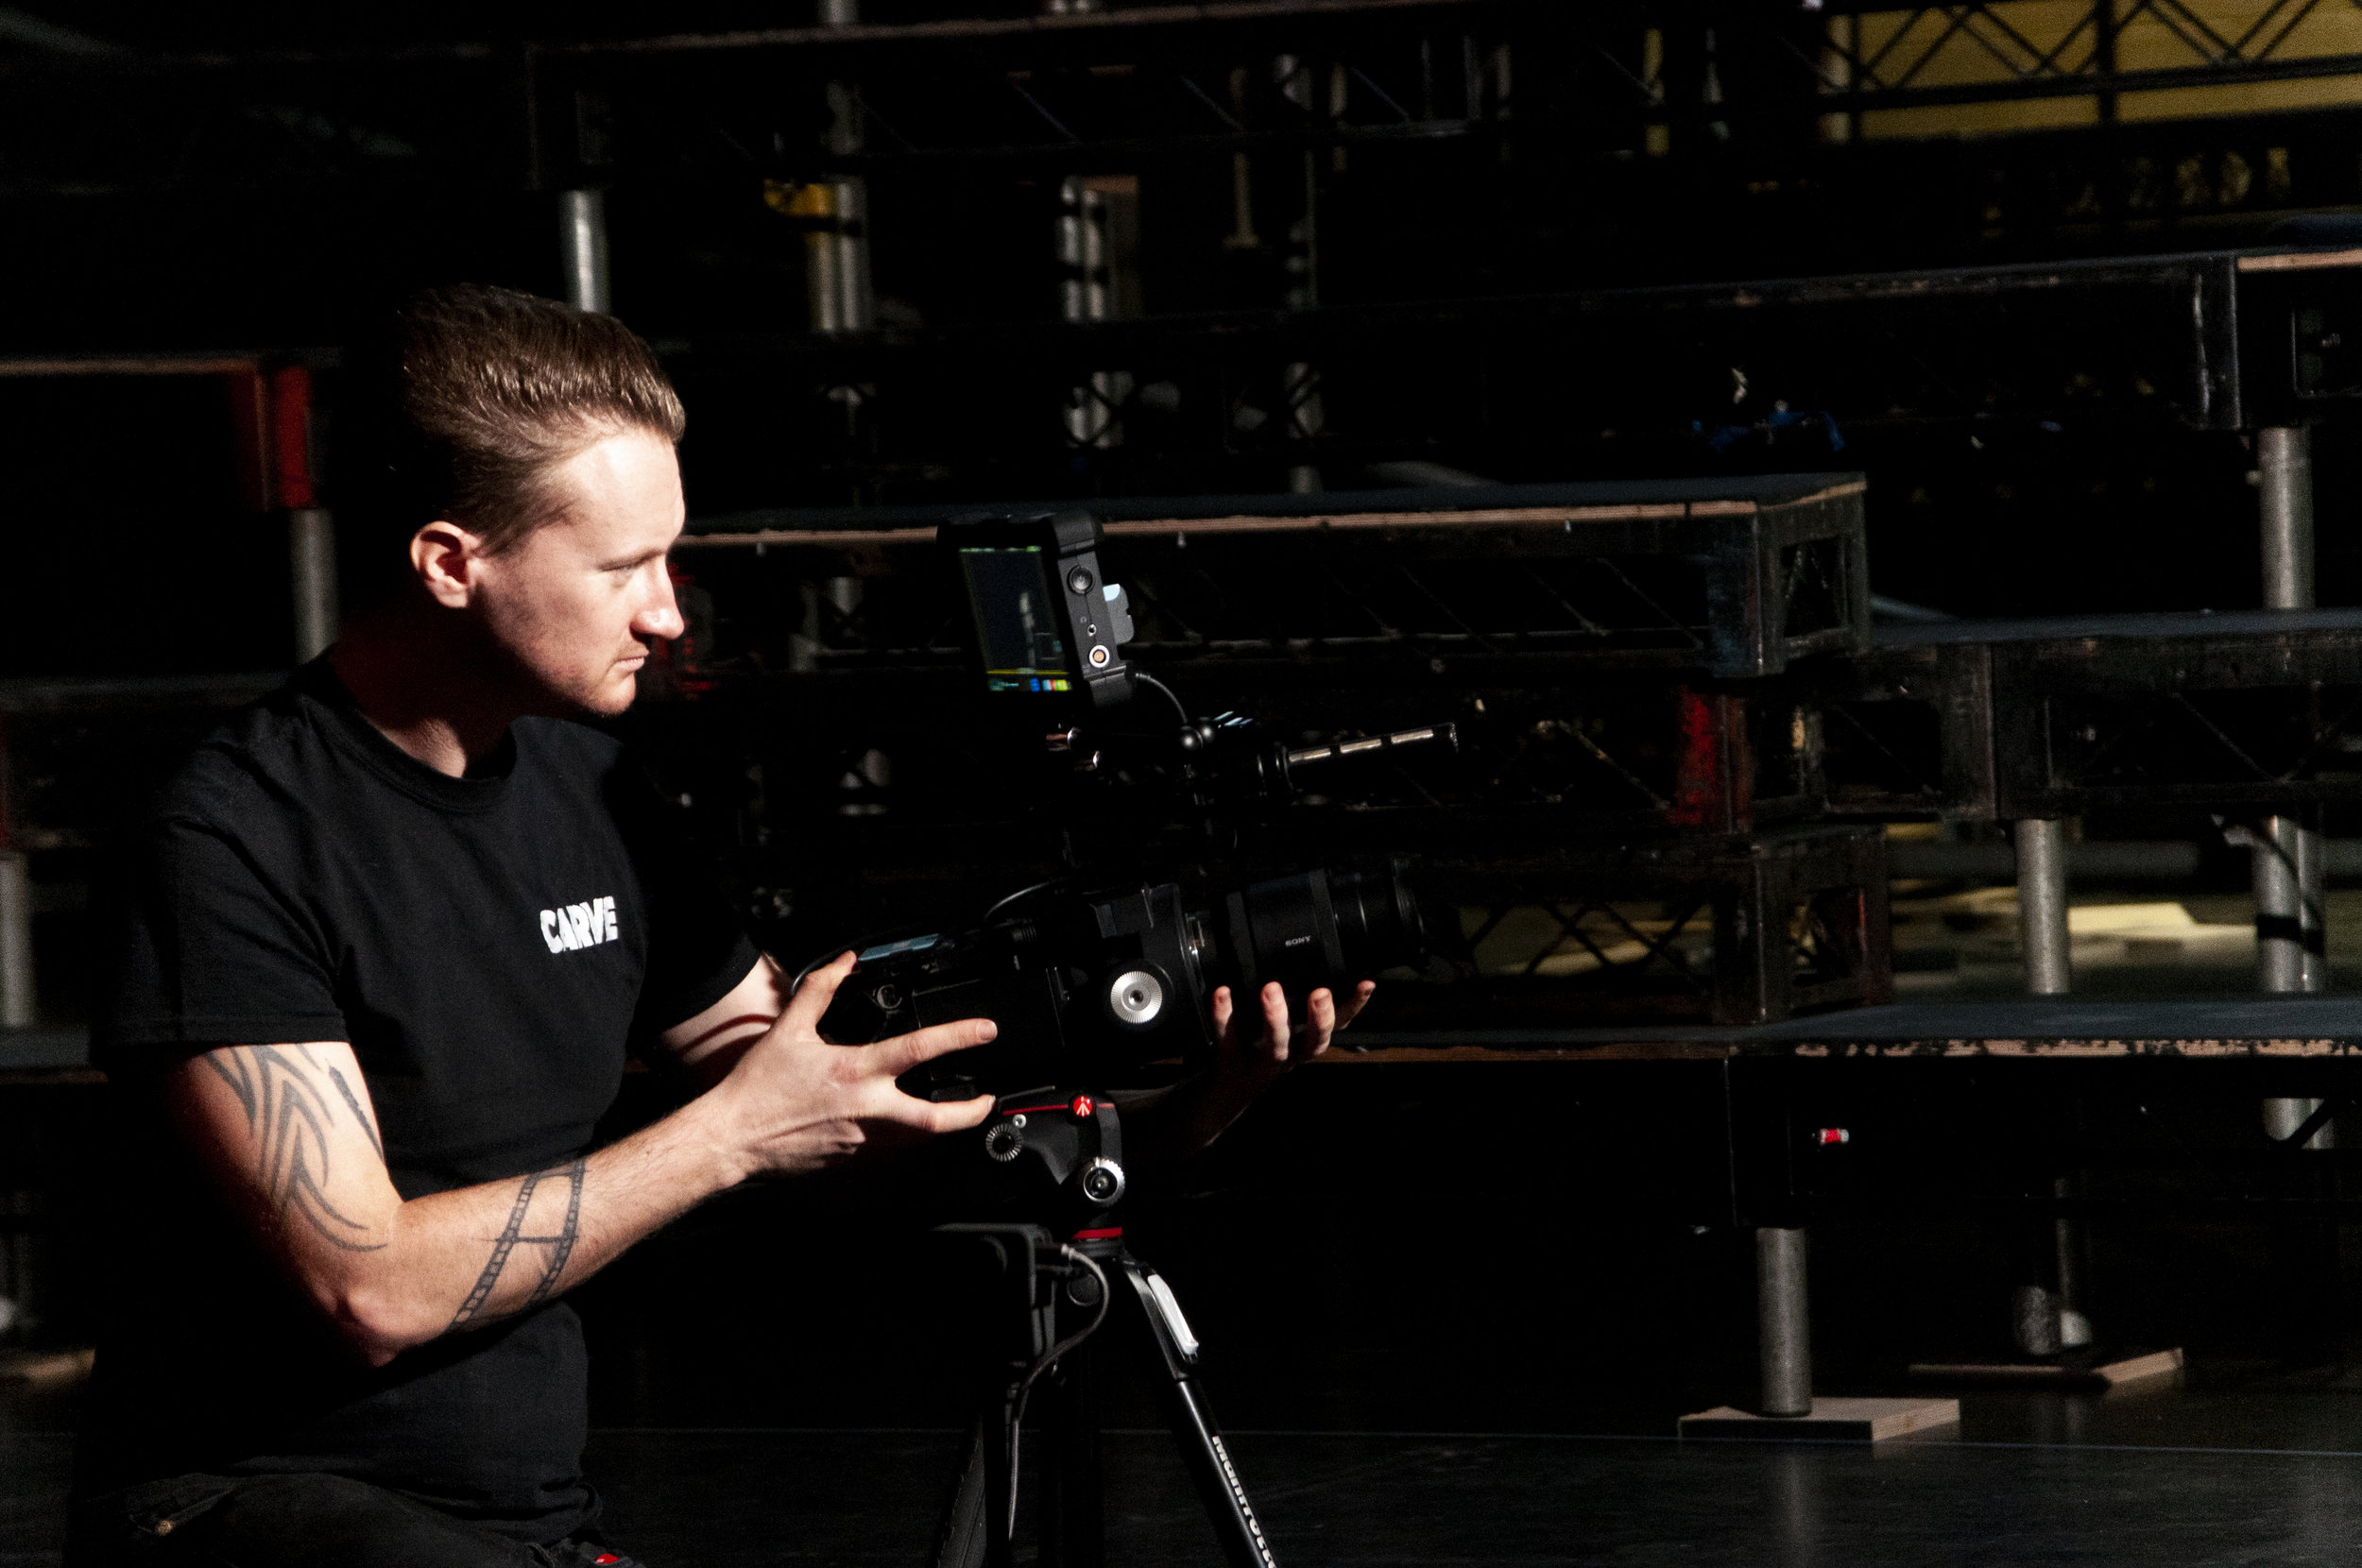 VIDEO PRODUCTION - Immersive and engaging videos produced for all your digital platforms.